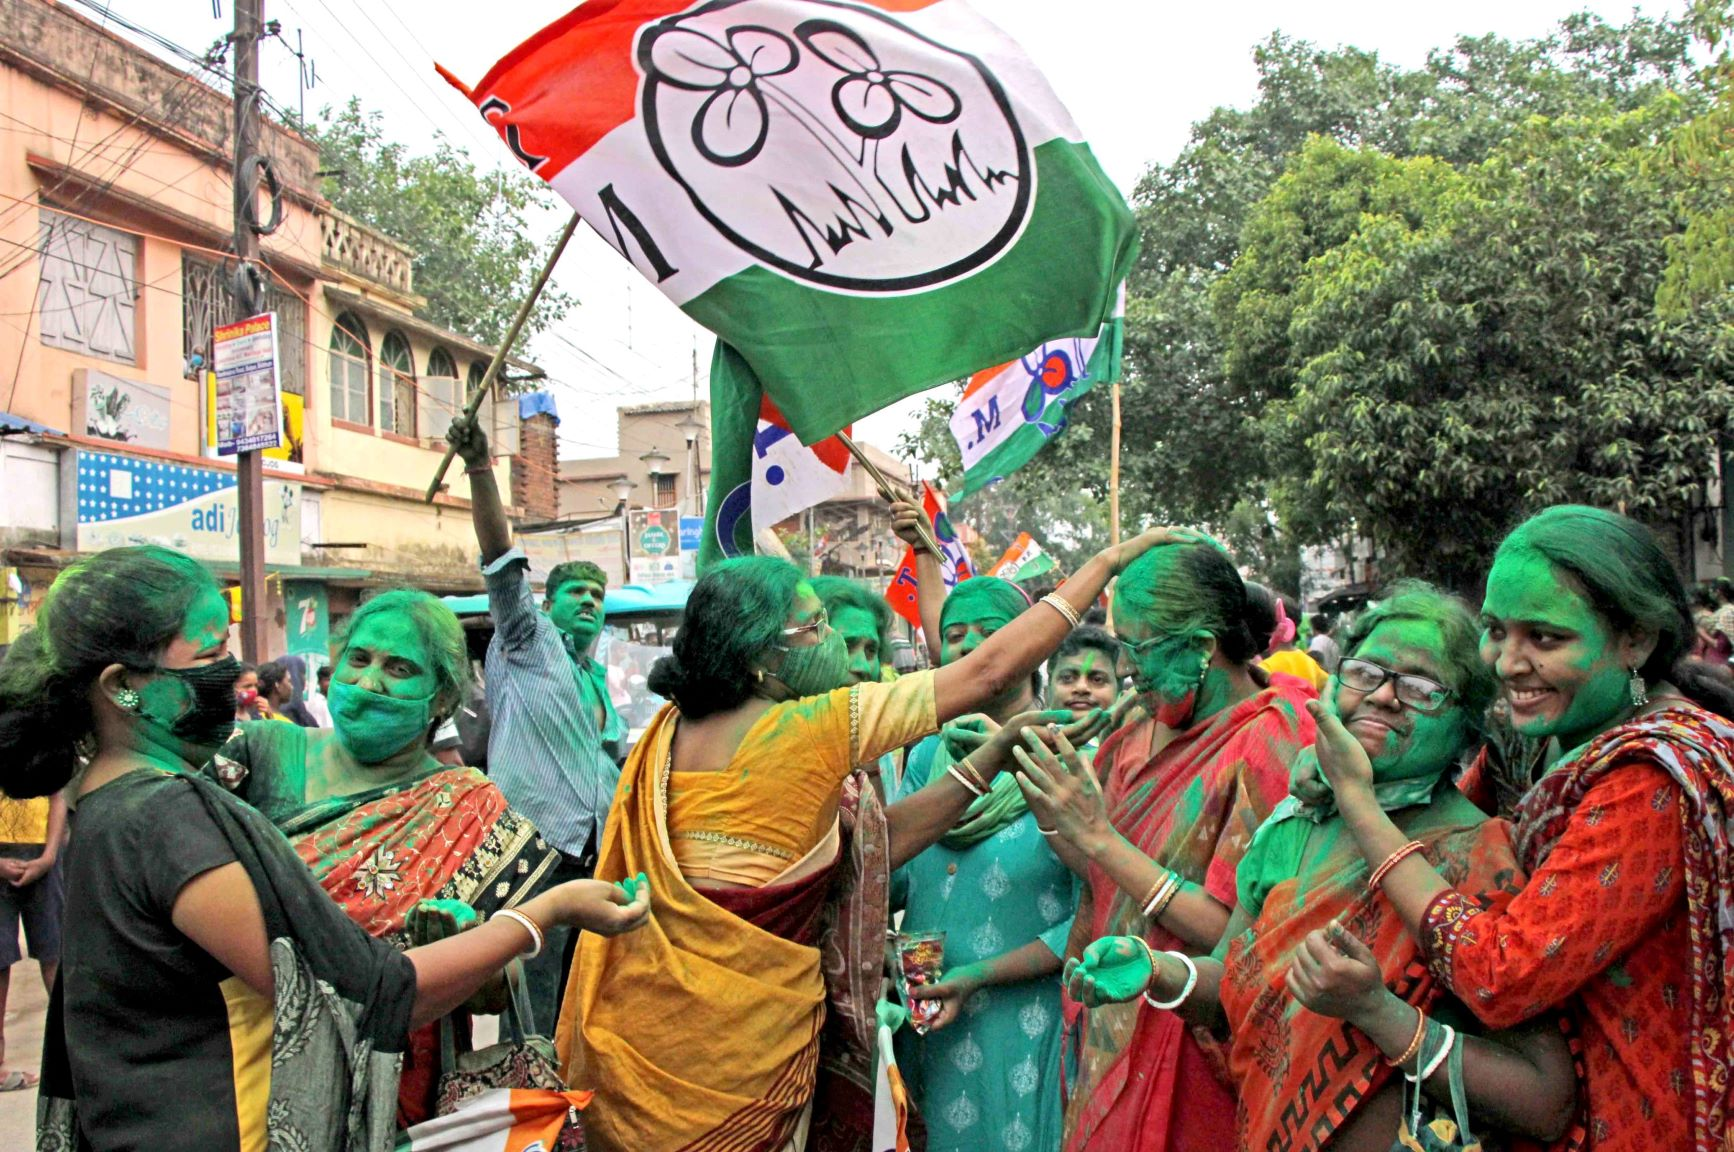 Birbhum: TMC supporters celebrate winning trend in the West Bengal state assembly elections at Bolpur in the Birbhum district of West Bengal, Sunday, May 2, 2021. (PTI Photo) (PTI05 02 2021 000180B)